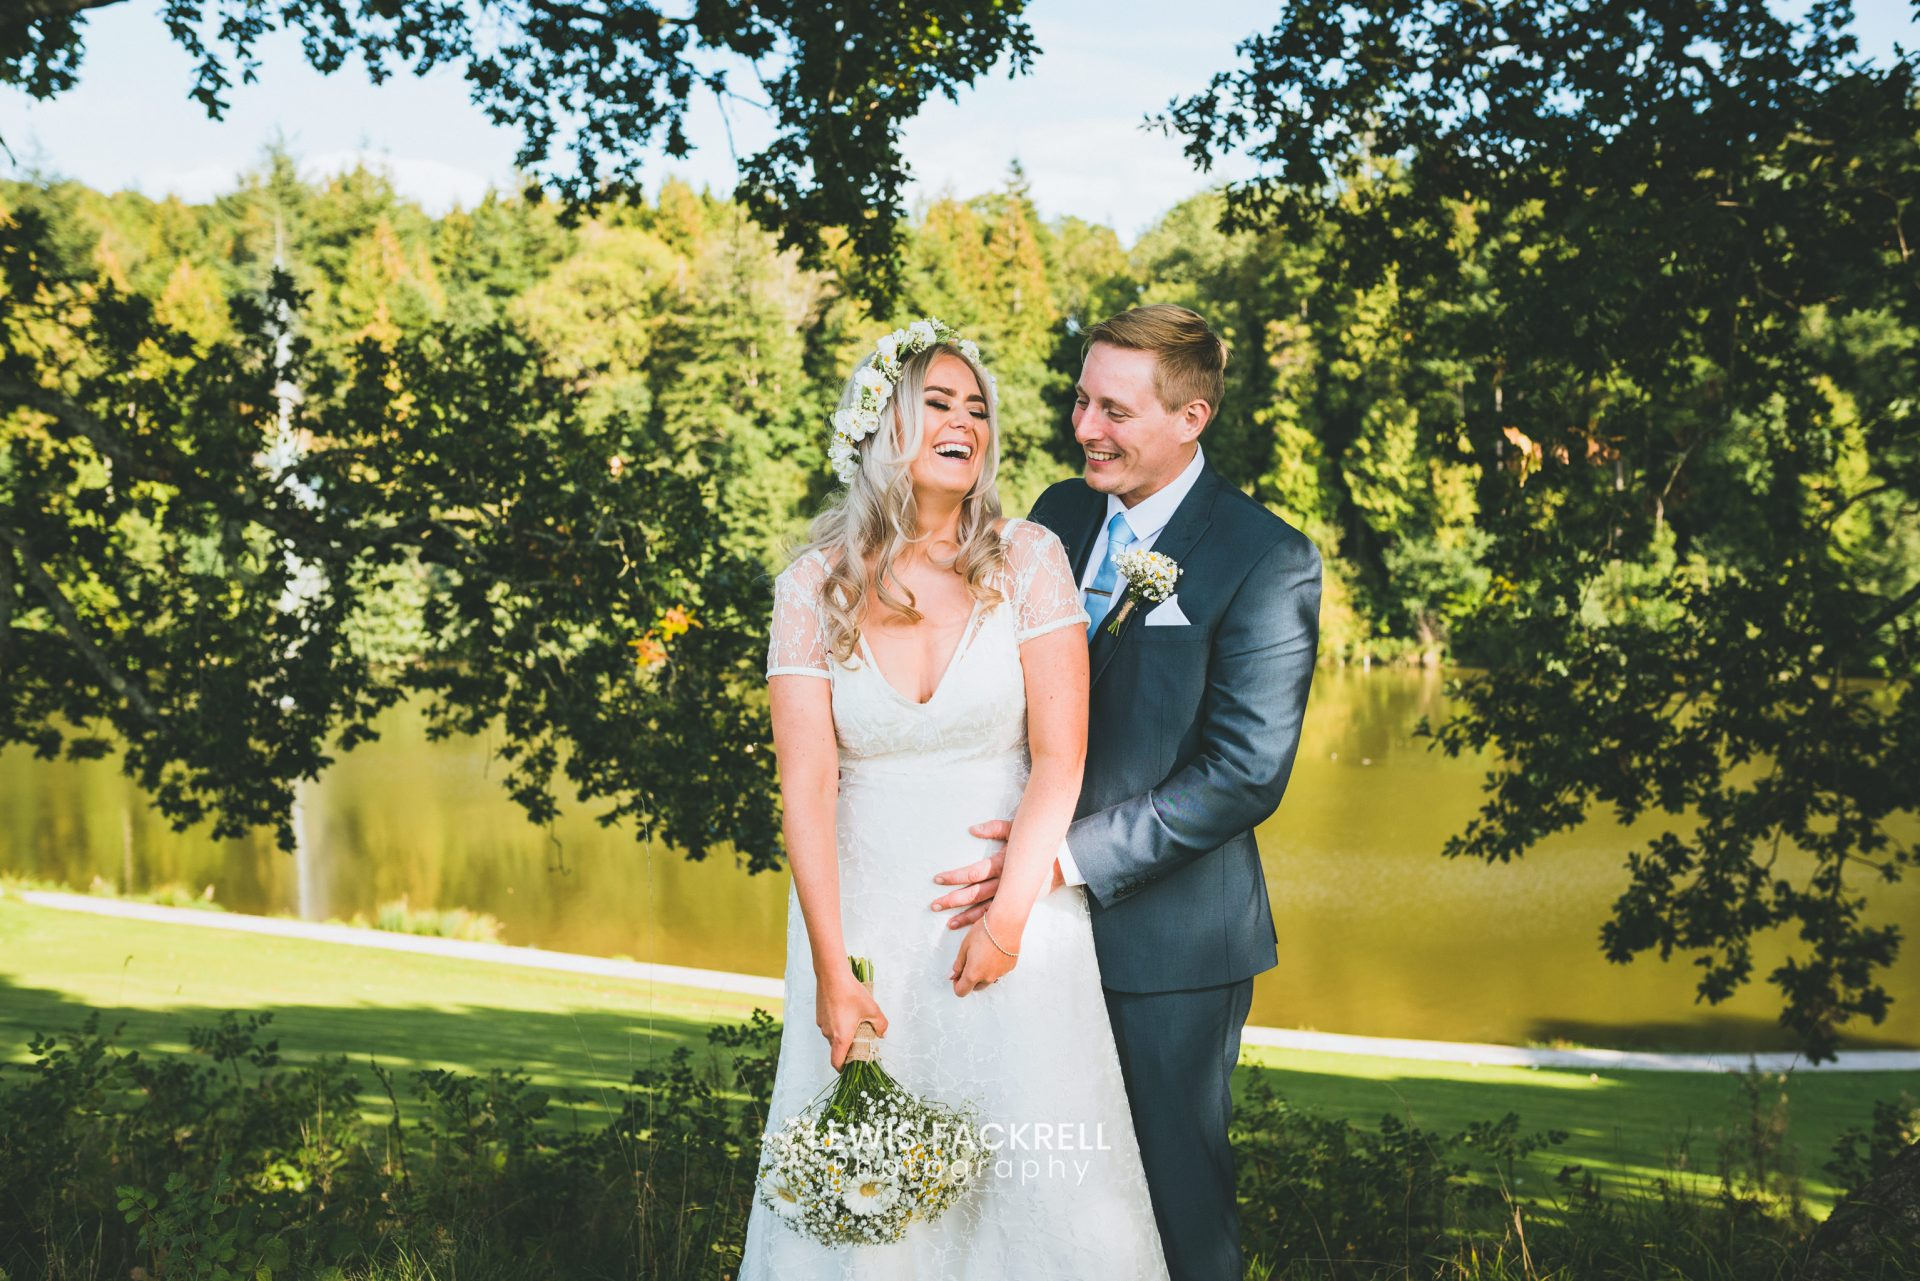 Cardiff wedding photography at Canada Lodge in summer of bride & groom laughing